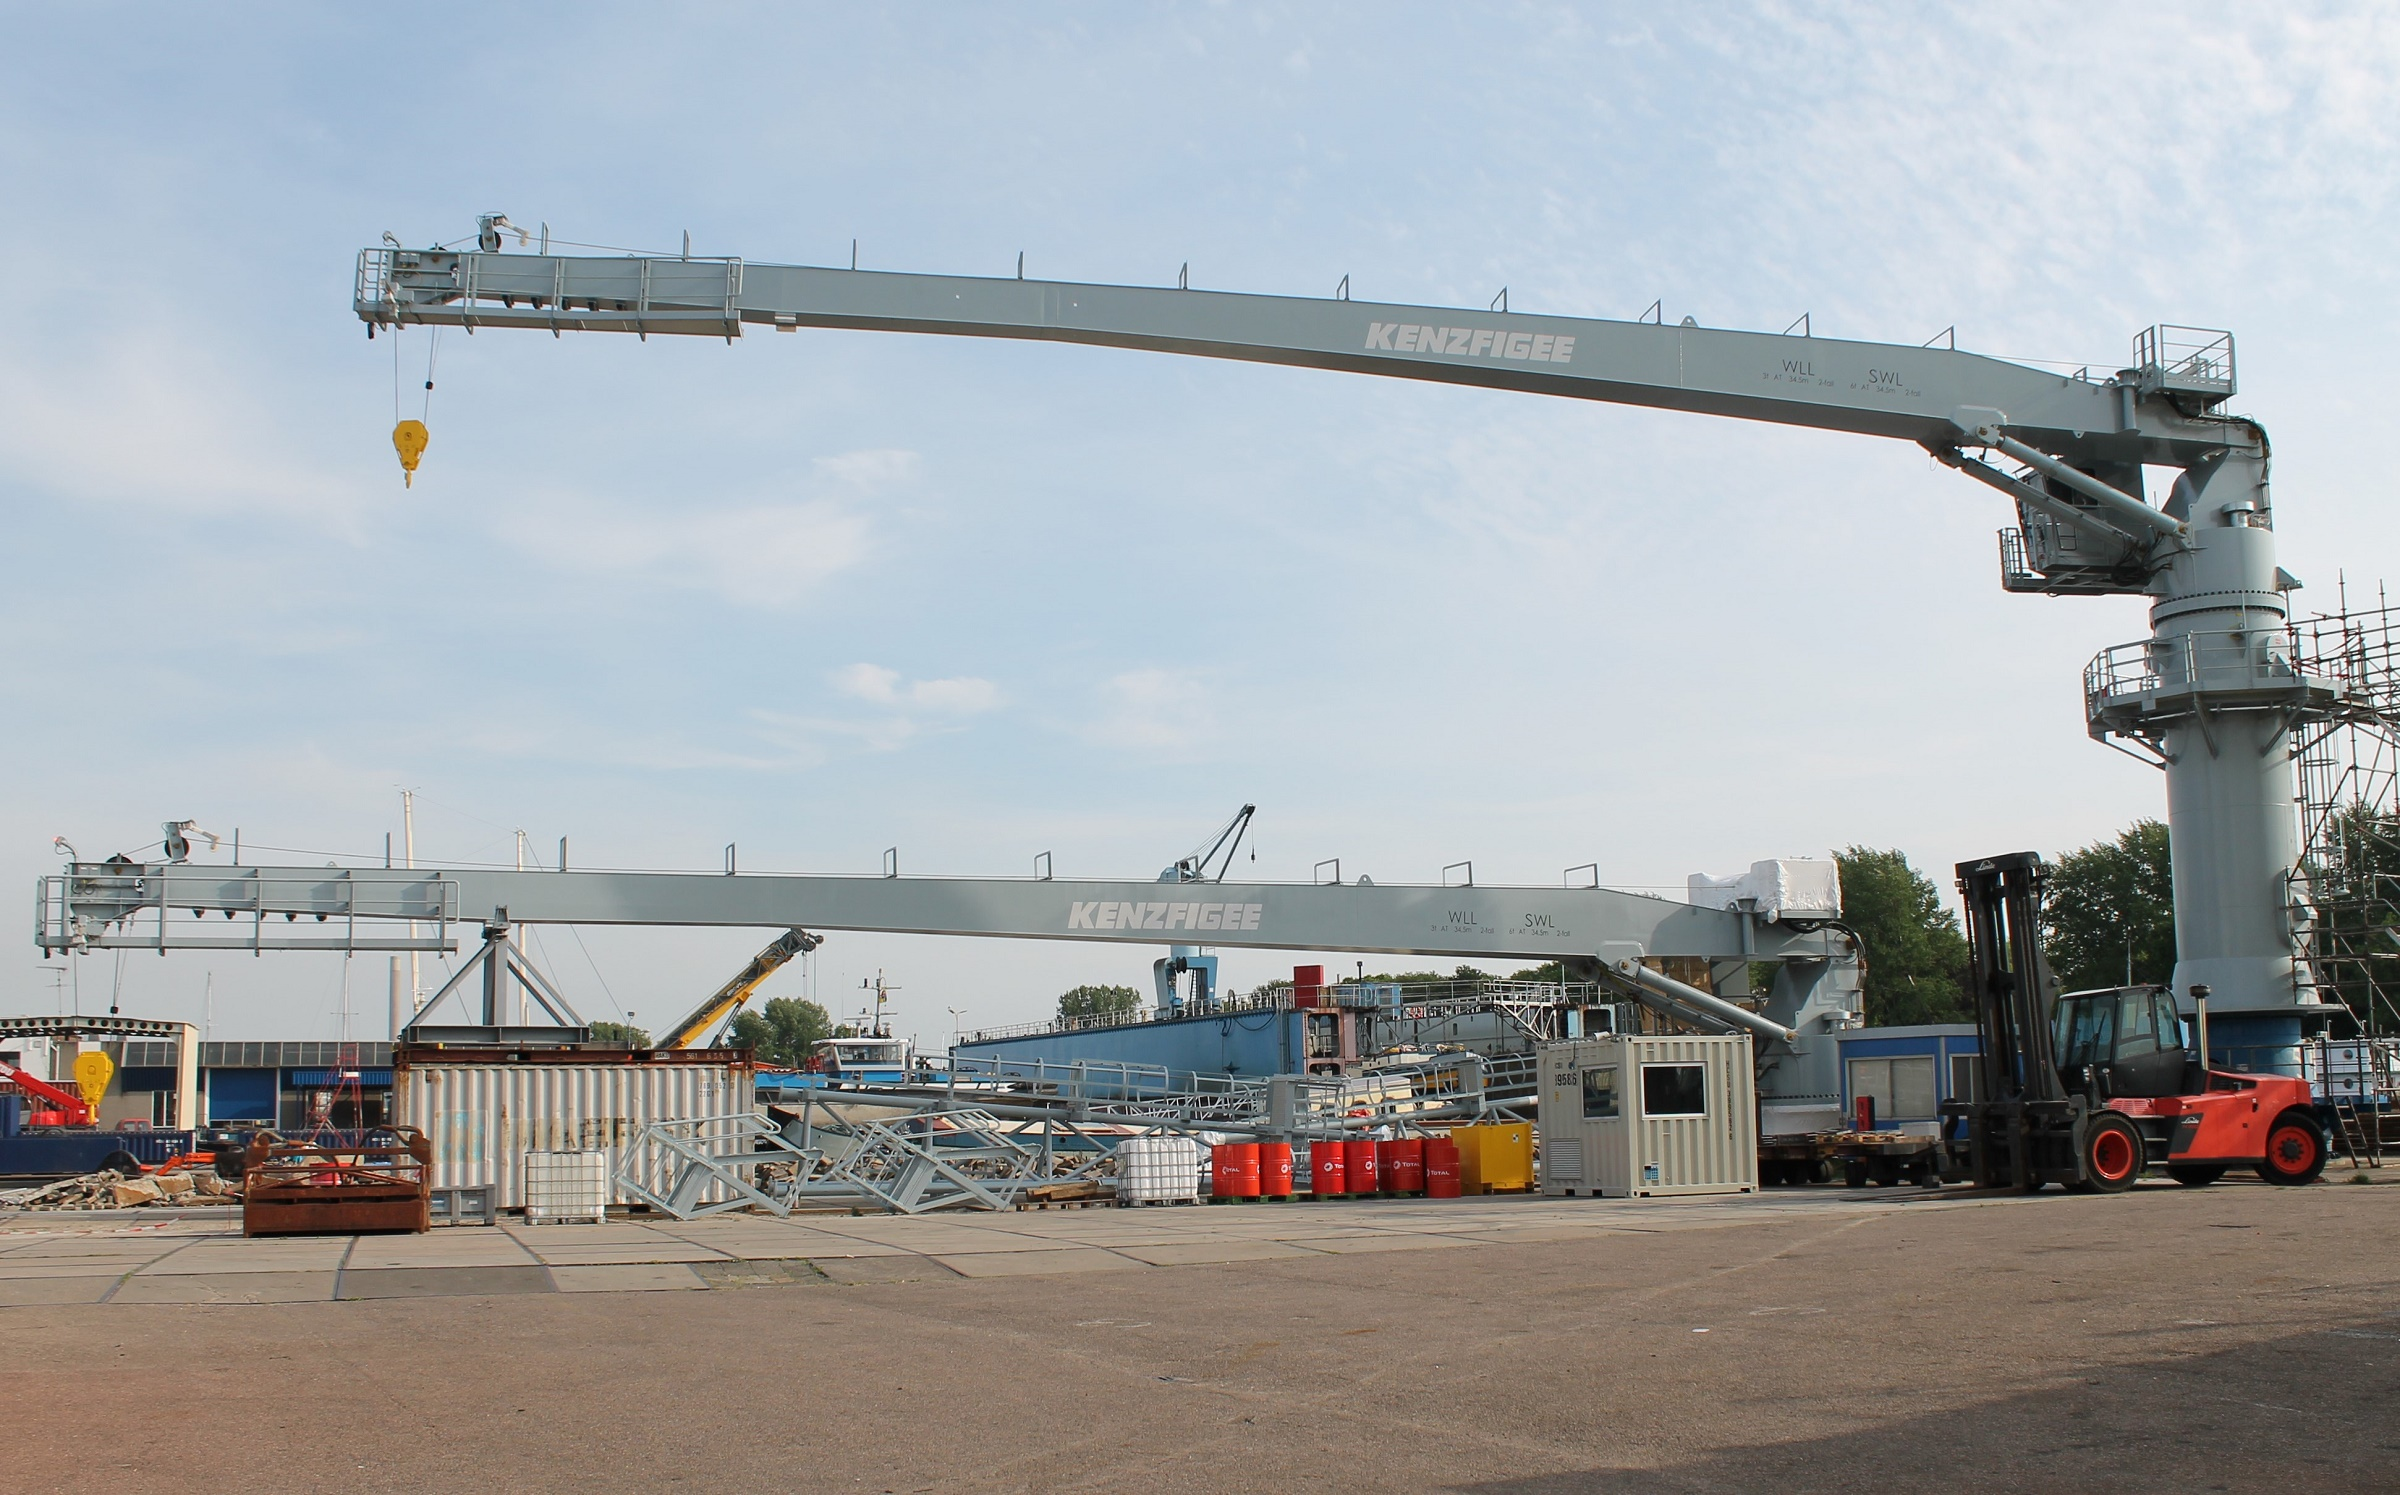 KenzFigee to supply two ammunition handling cranes to defence infrastructure organisation (DIO), UK